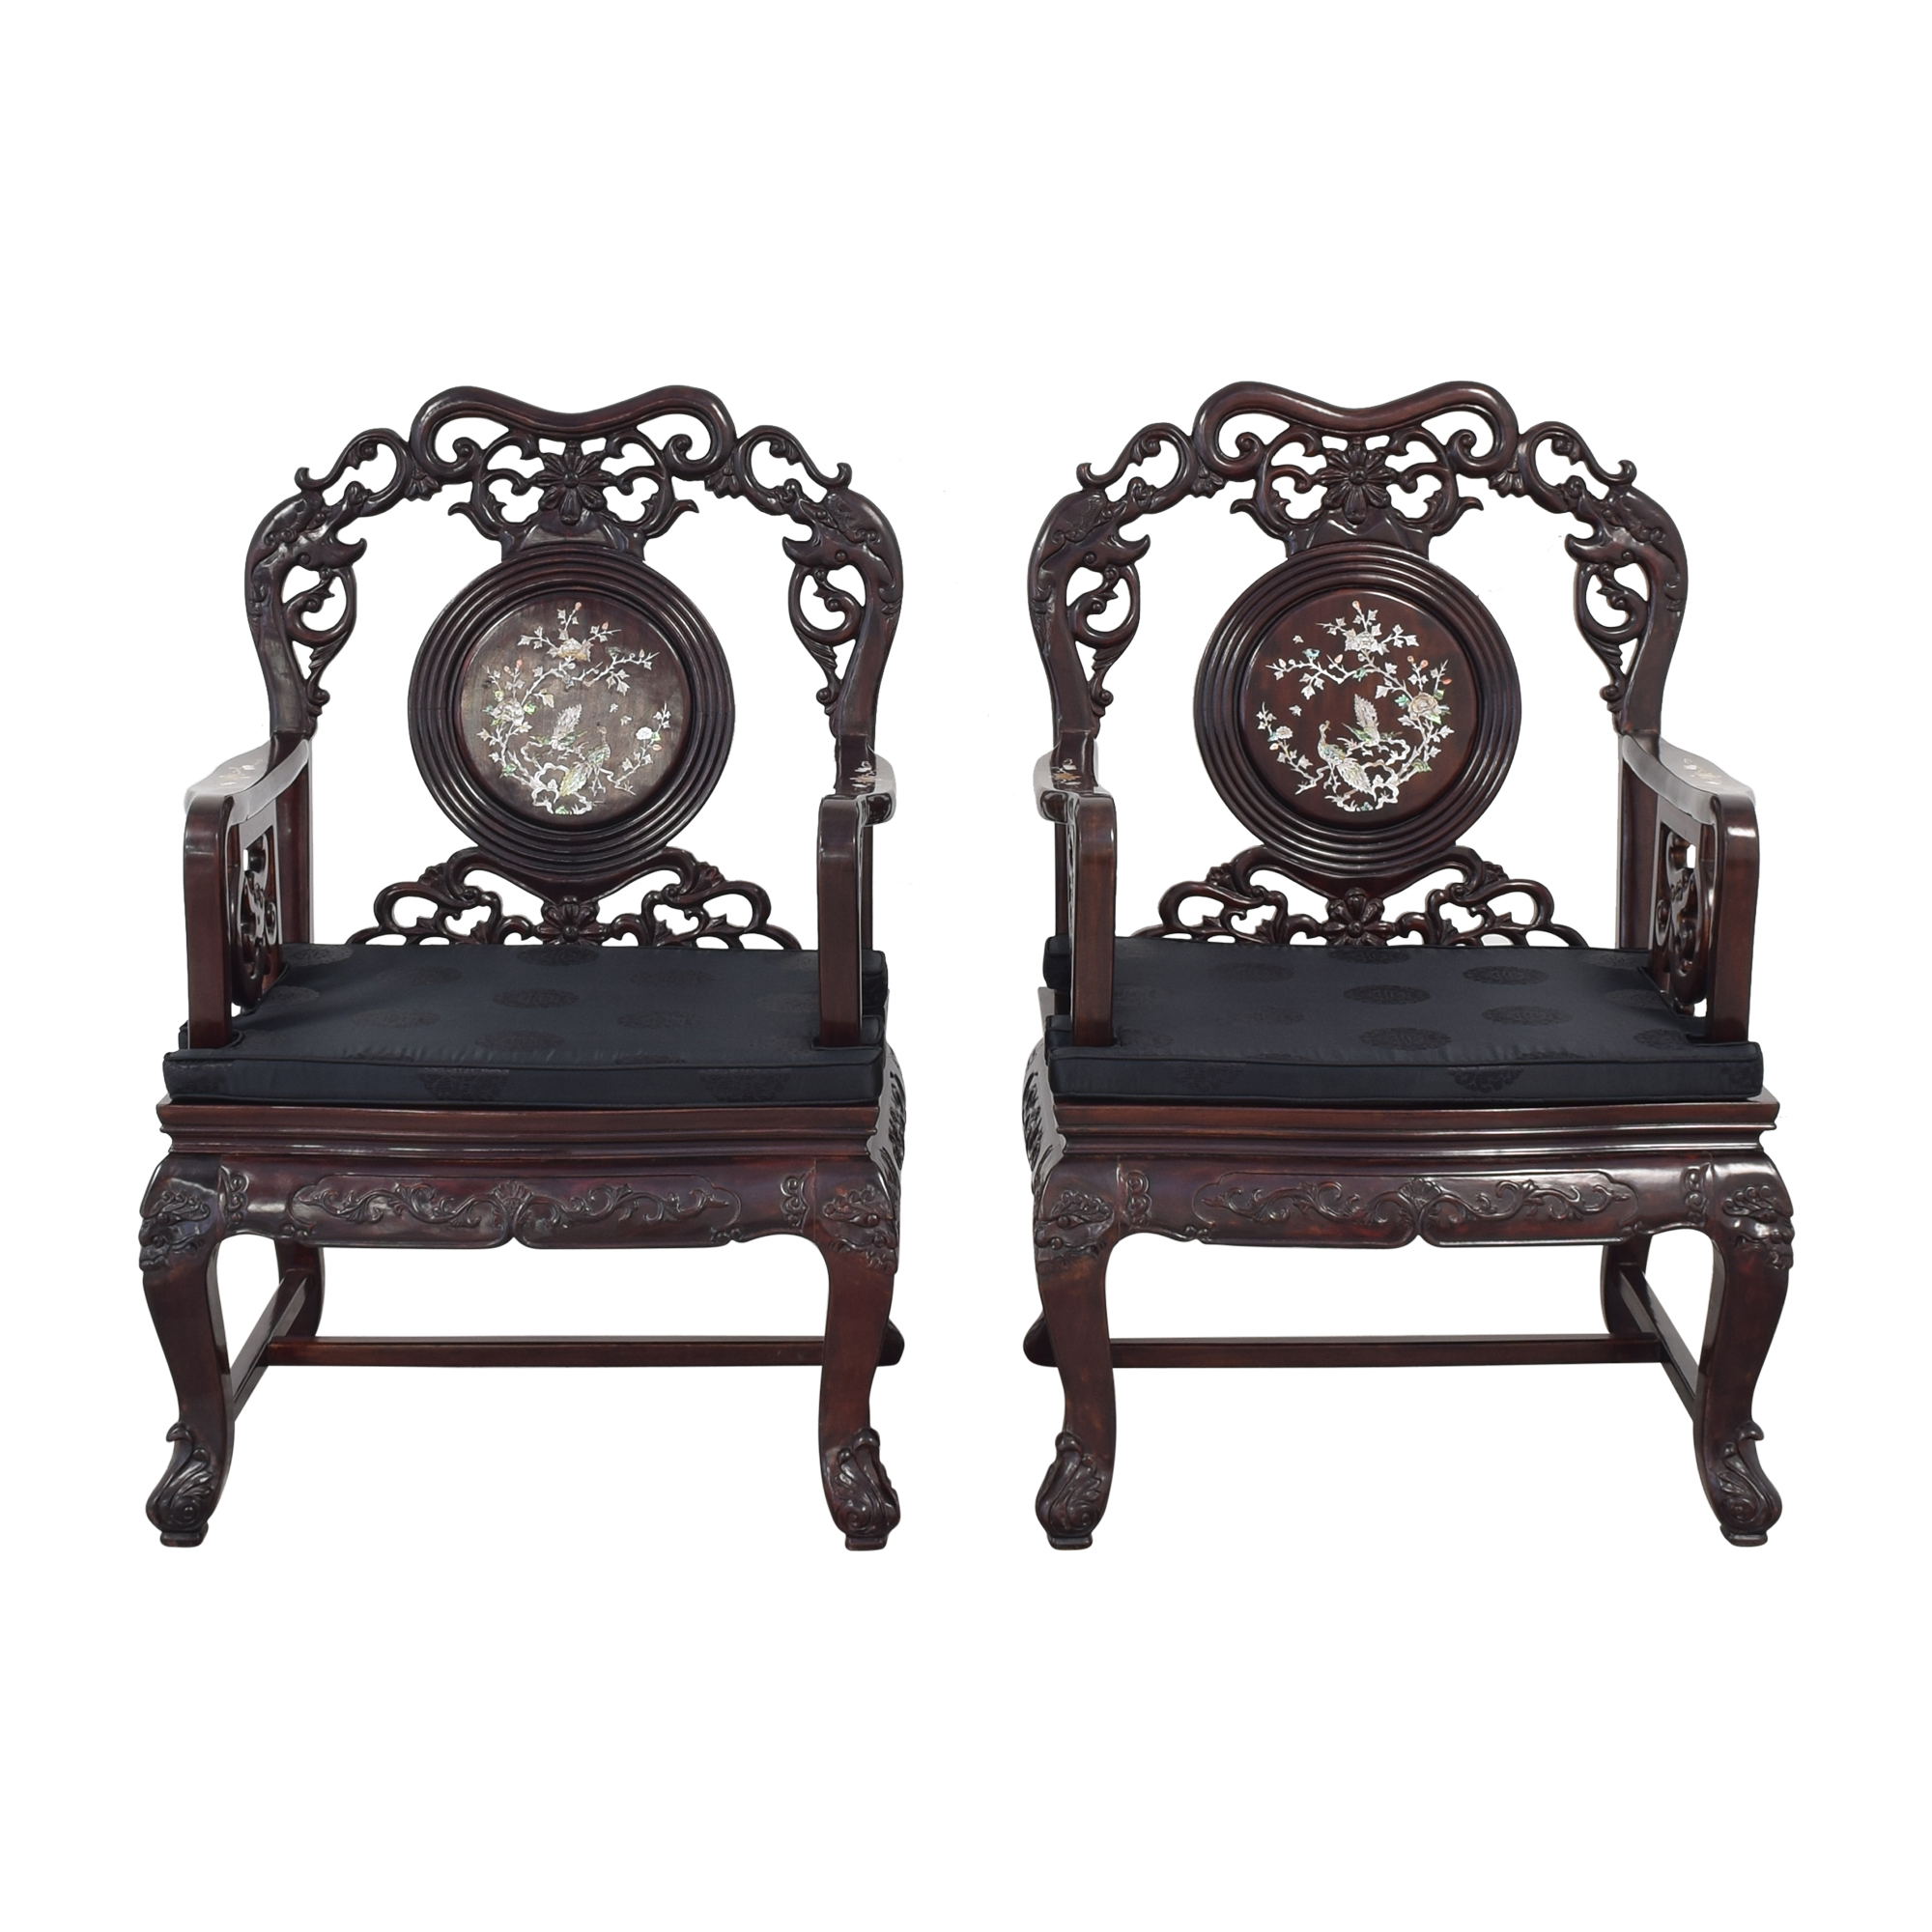 Upholstered Carved Chairs with Inlay pa